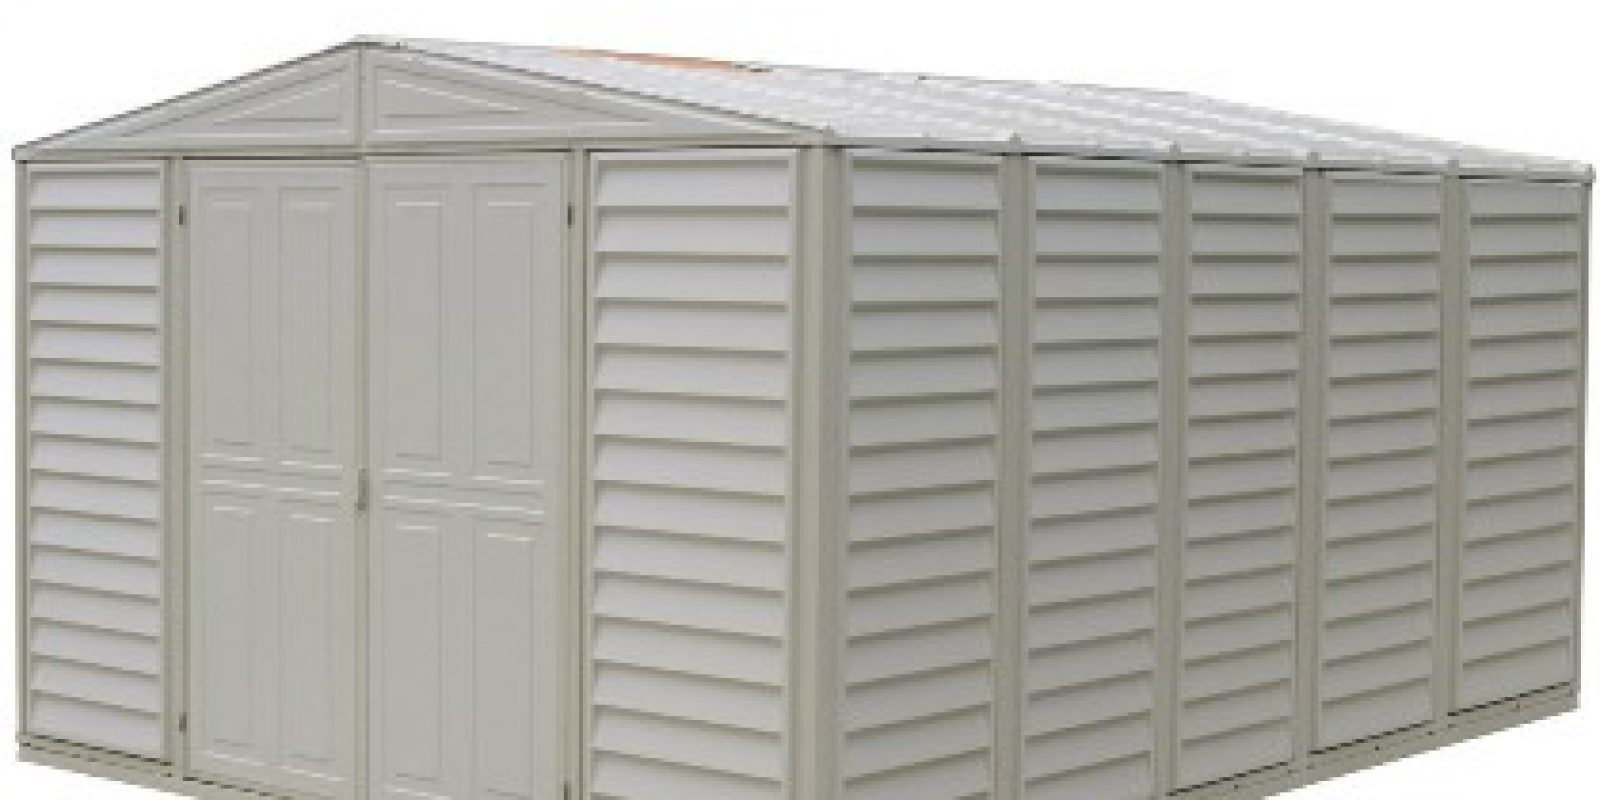 Duramax Woodbridge Model 00584 Storage Shed